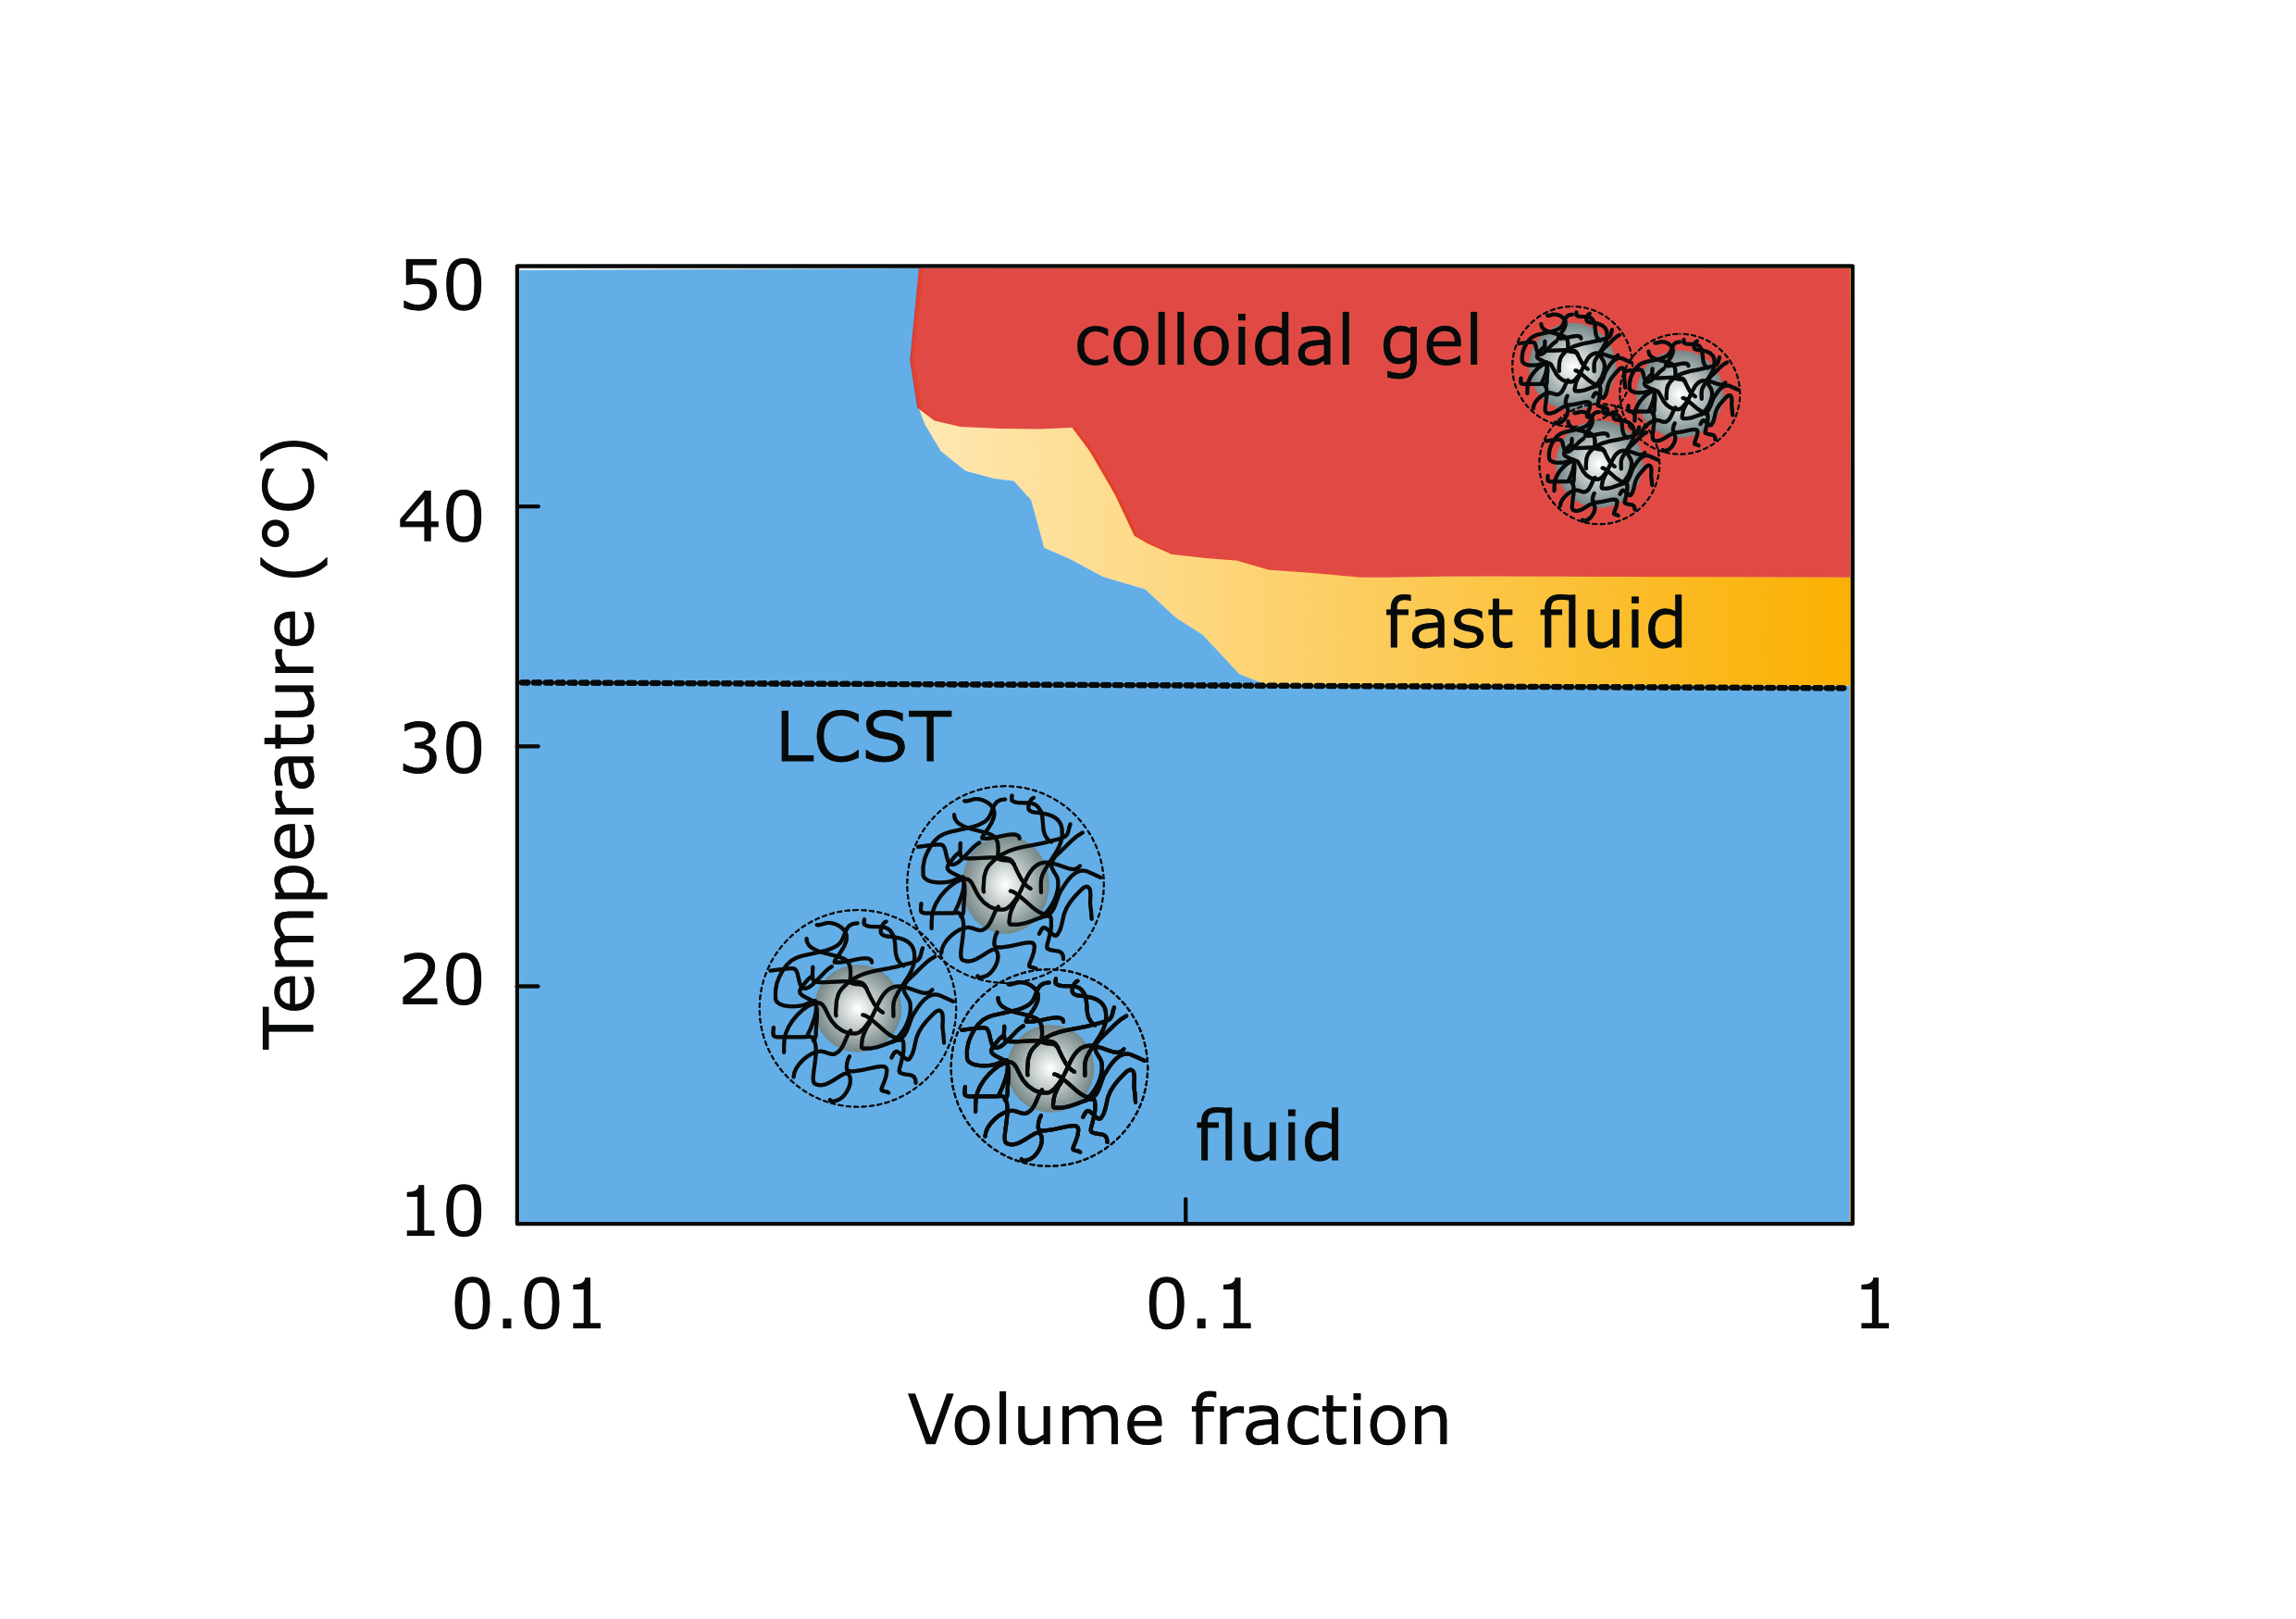 Full phase diagram of silica PNIPAm showing dependence of the collapse on temperature and volume fraction